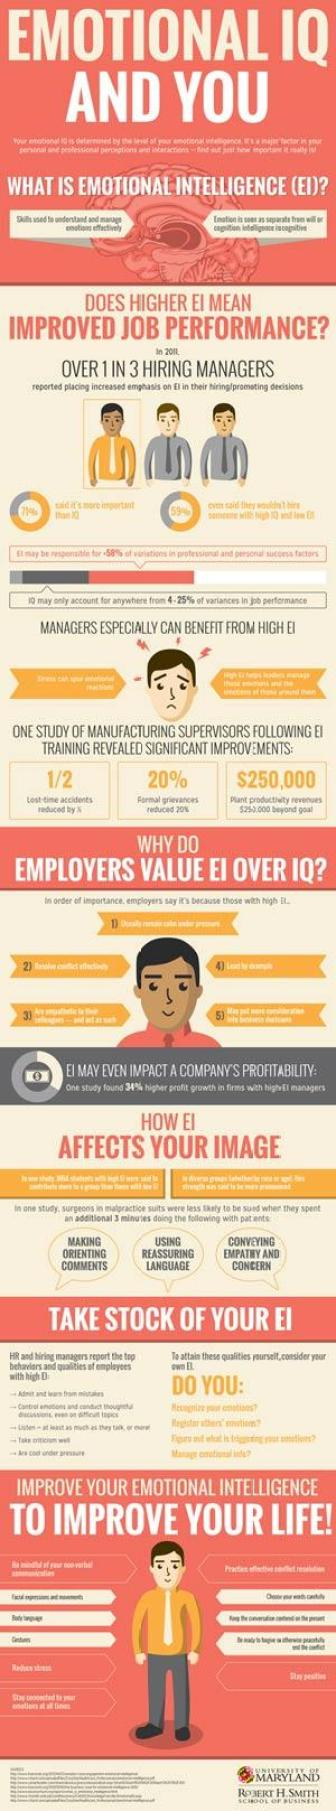 EmotionalIQ-Infographic---Leadership-Article-from-M-Hunter